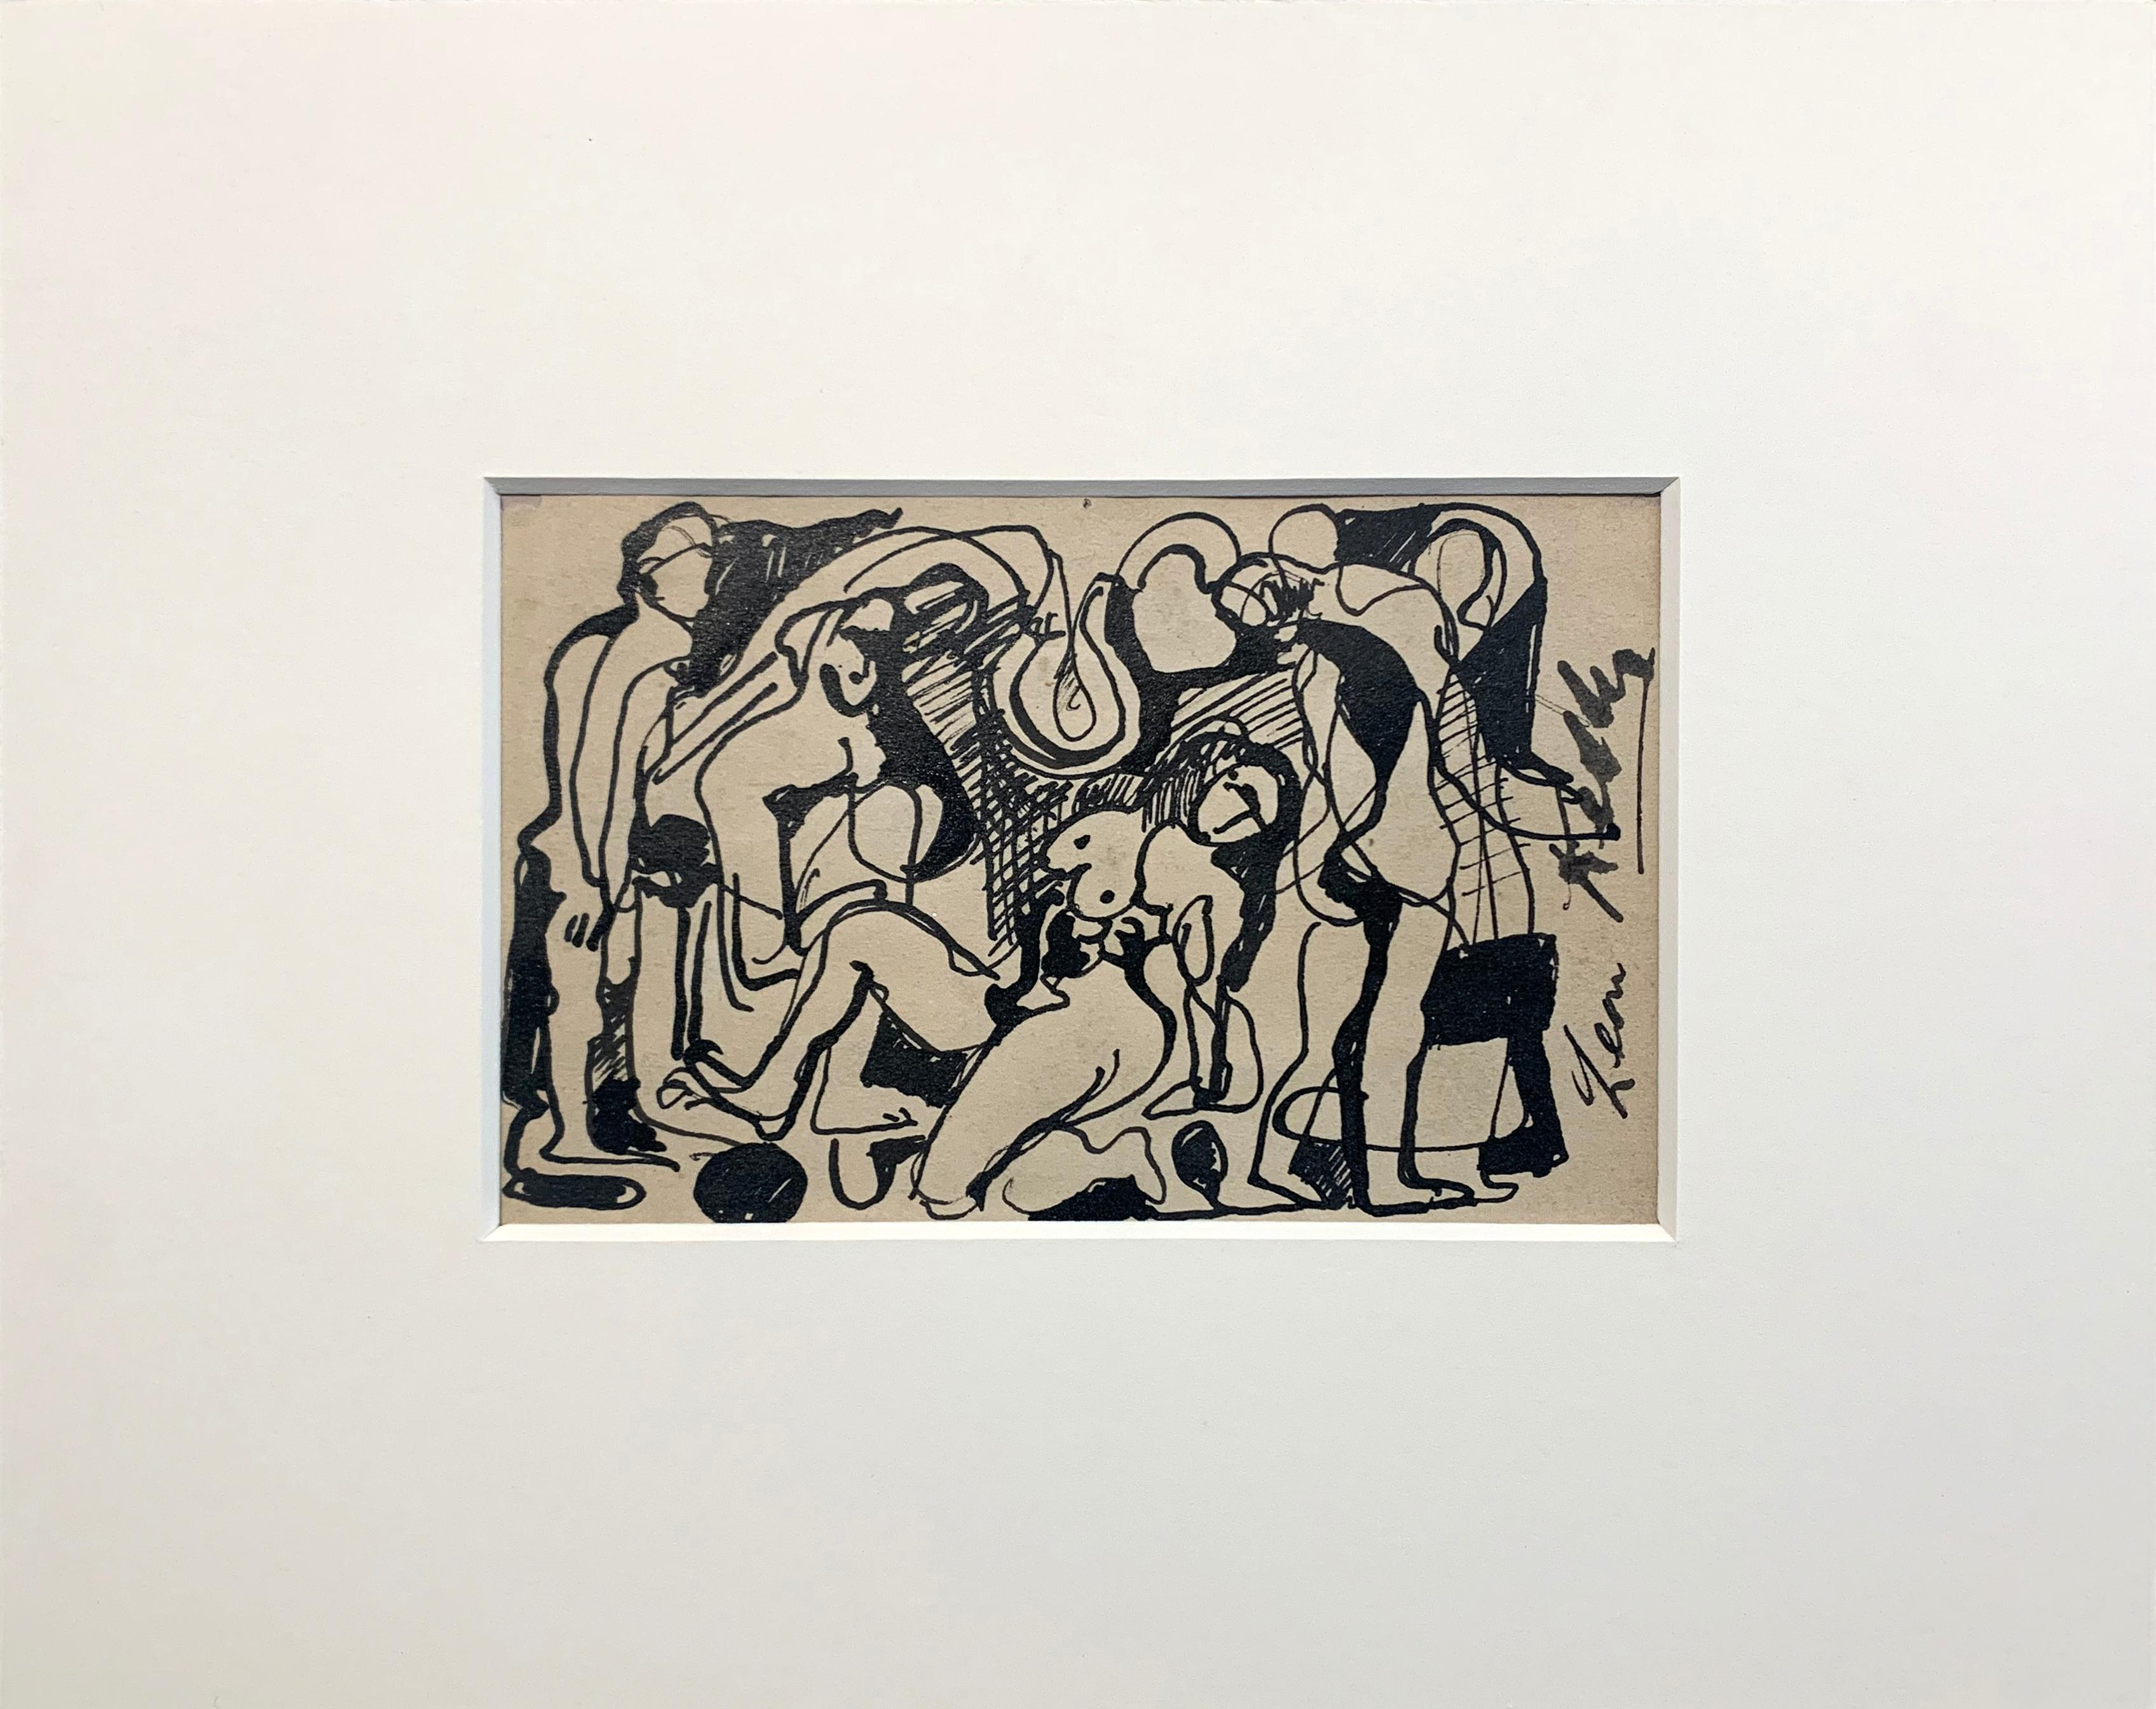 Group of Nudes, Cubist Style Figurative Drawing, Ink on Paper, Signed